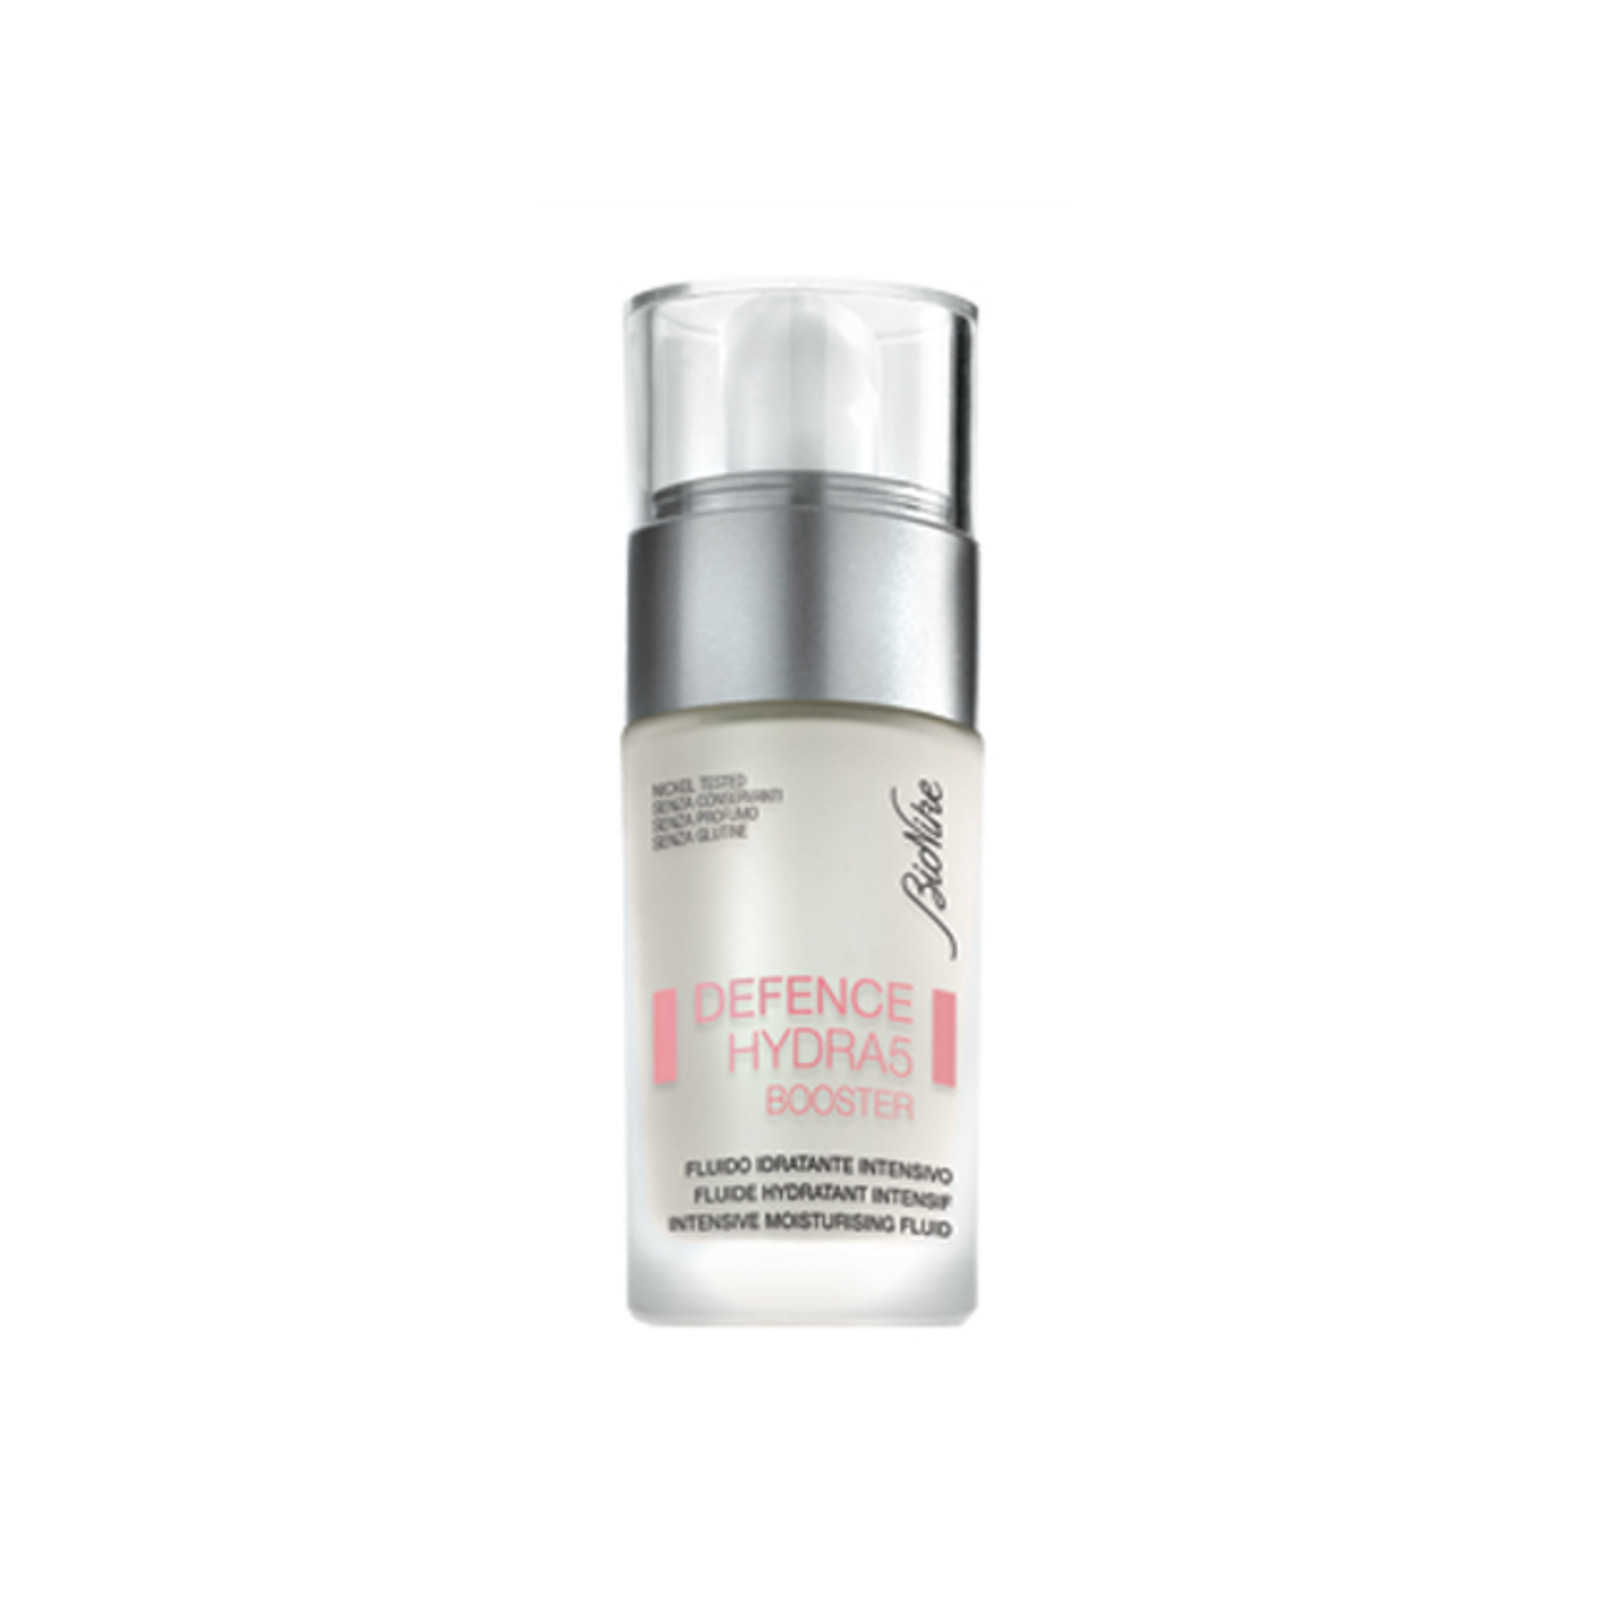 Bionike - Defence Hydra 5 - Booster